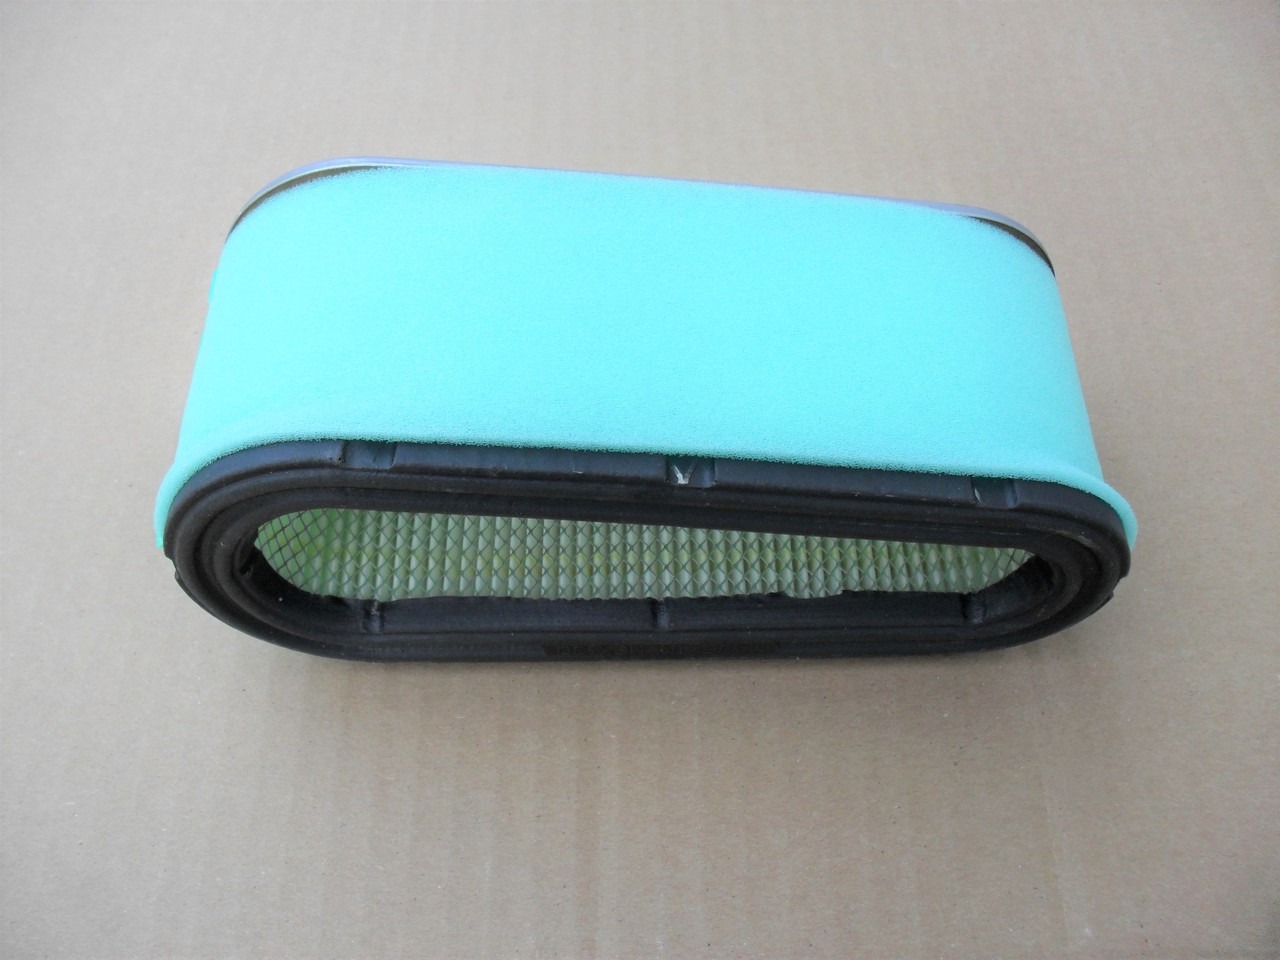 Air Filter for Briggs and Stratton 493909, 496894, 496894S, 4139, 5053, 5053B, 5053D, 5053H, 5053K, Includes Foam Pre Cleaner Wrap